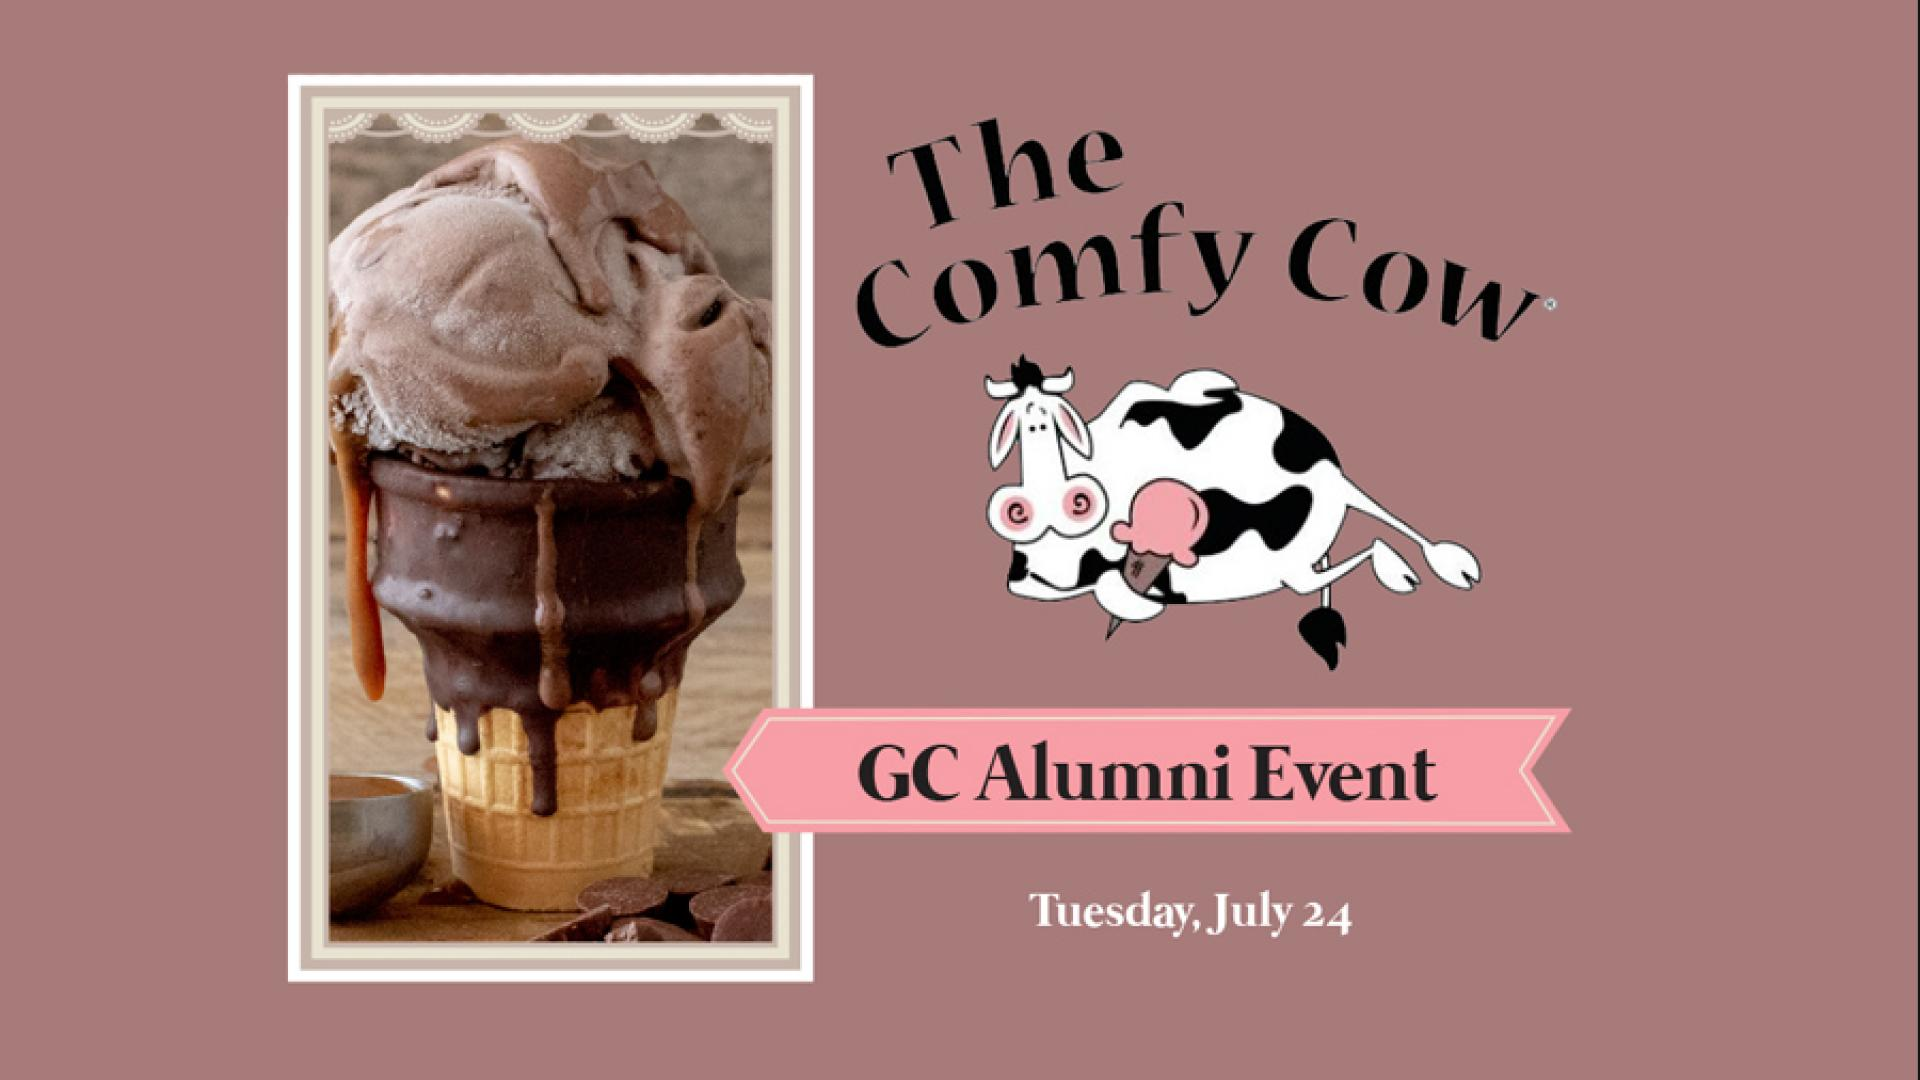 July Alumni Events are Family Affairs